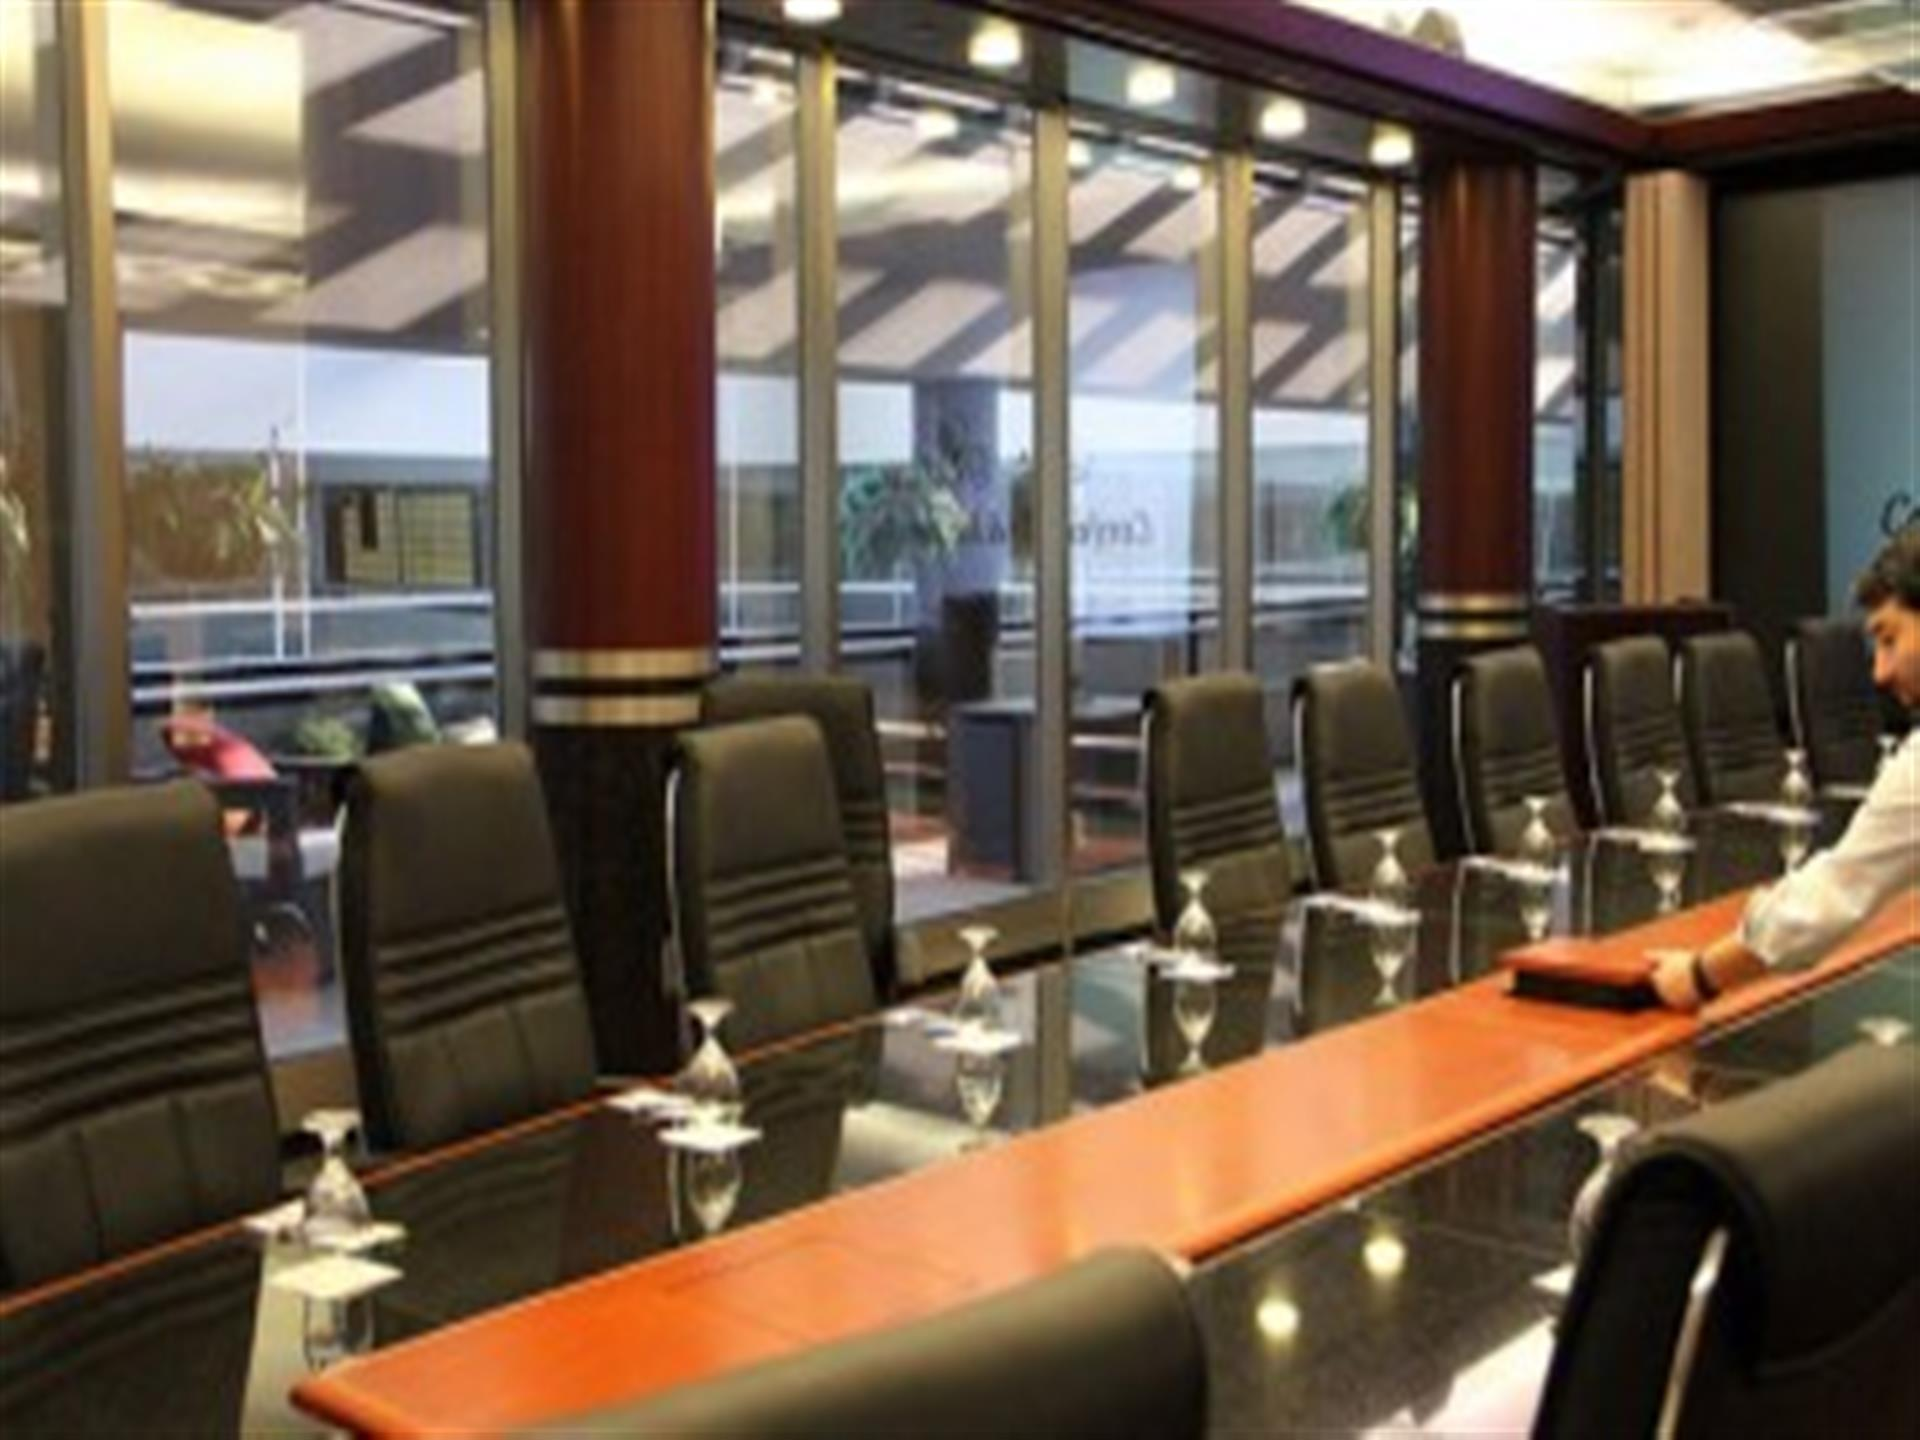 Executive boardroom table with chairs in front of window